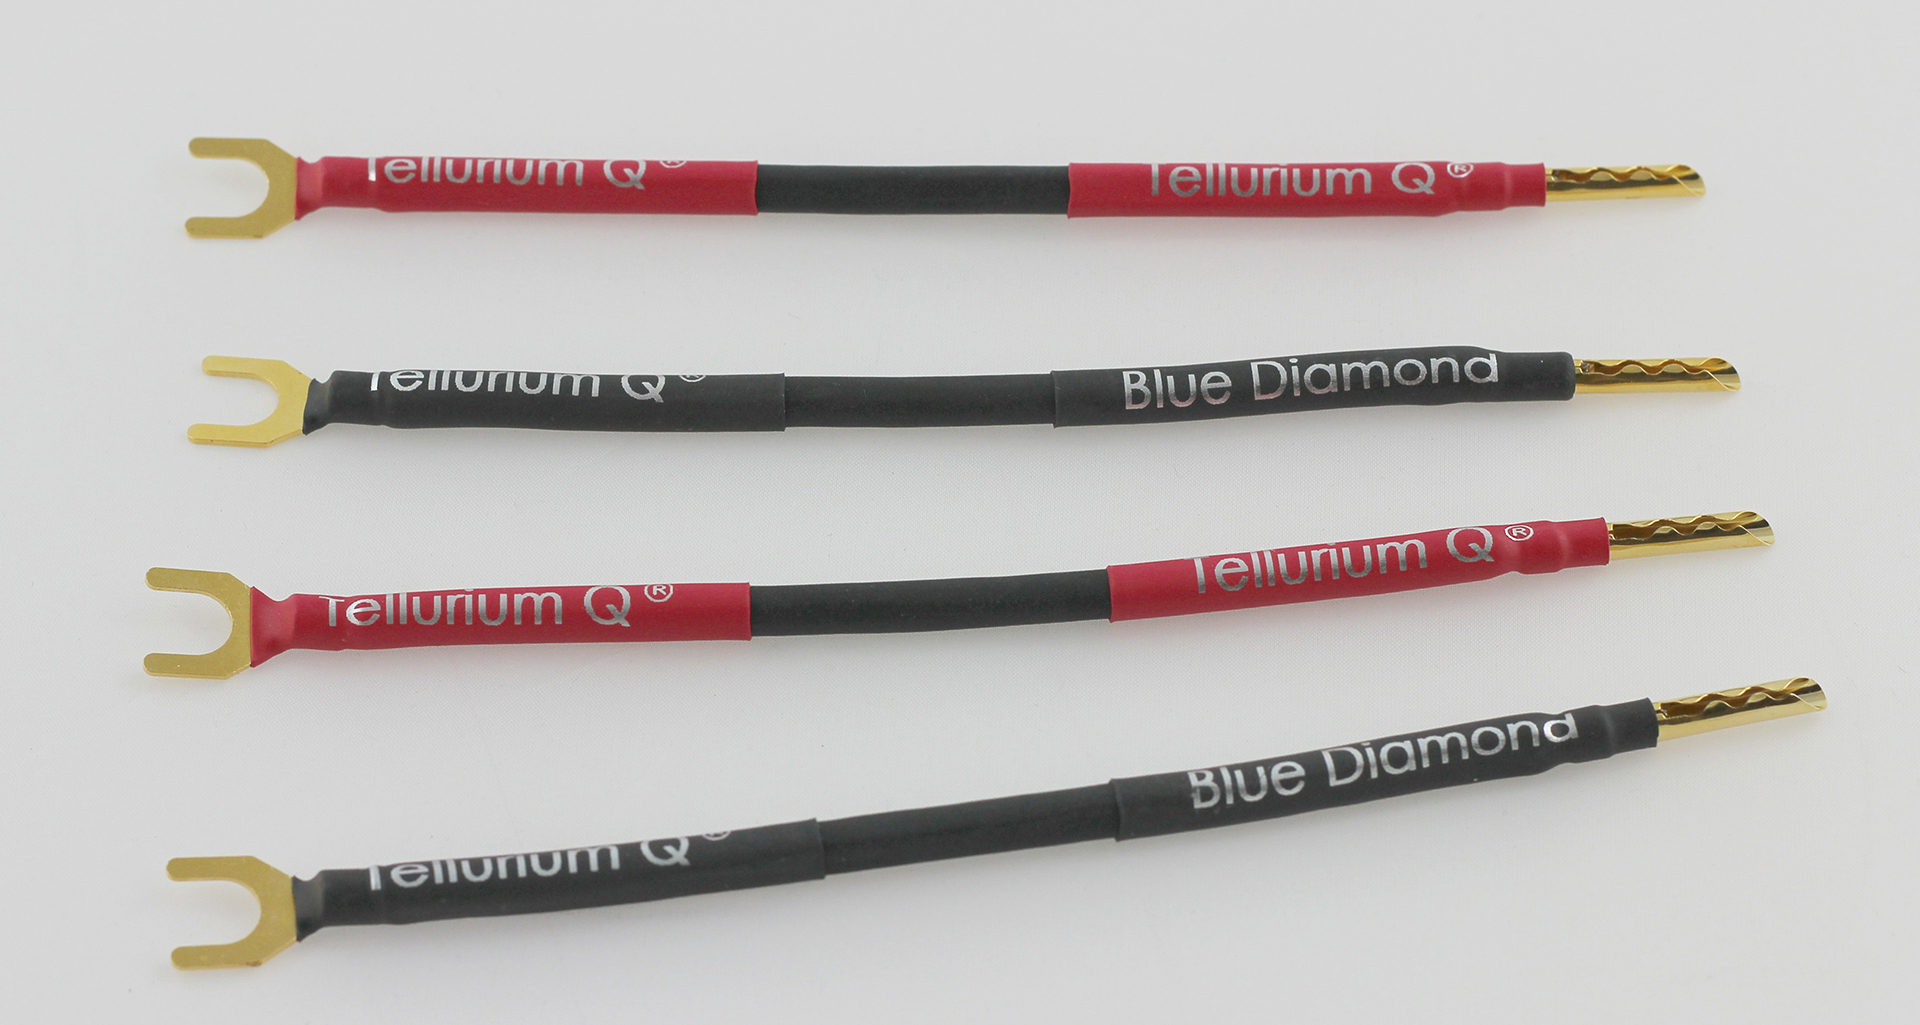 Tellurium Q | Blue Diamond | Jumper Kabel